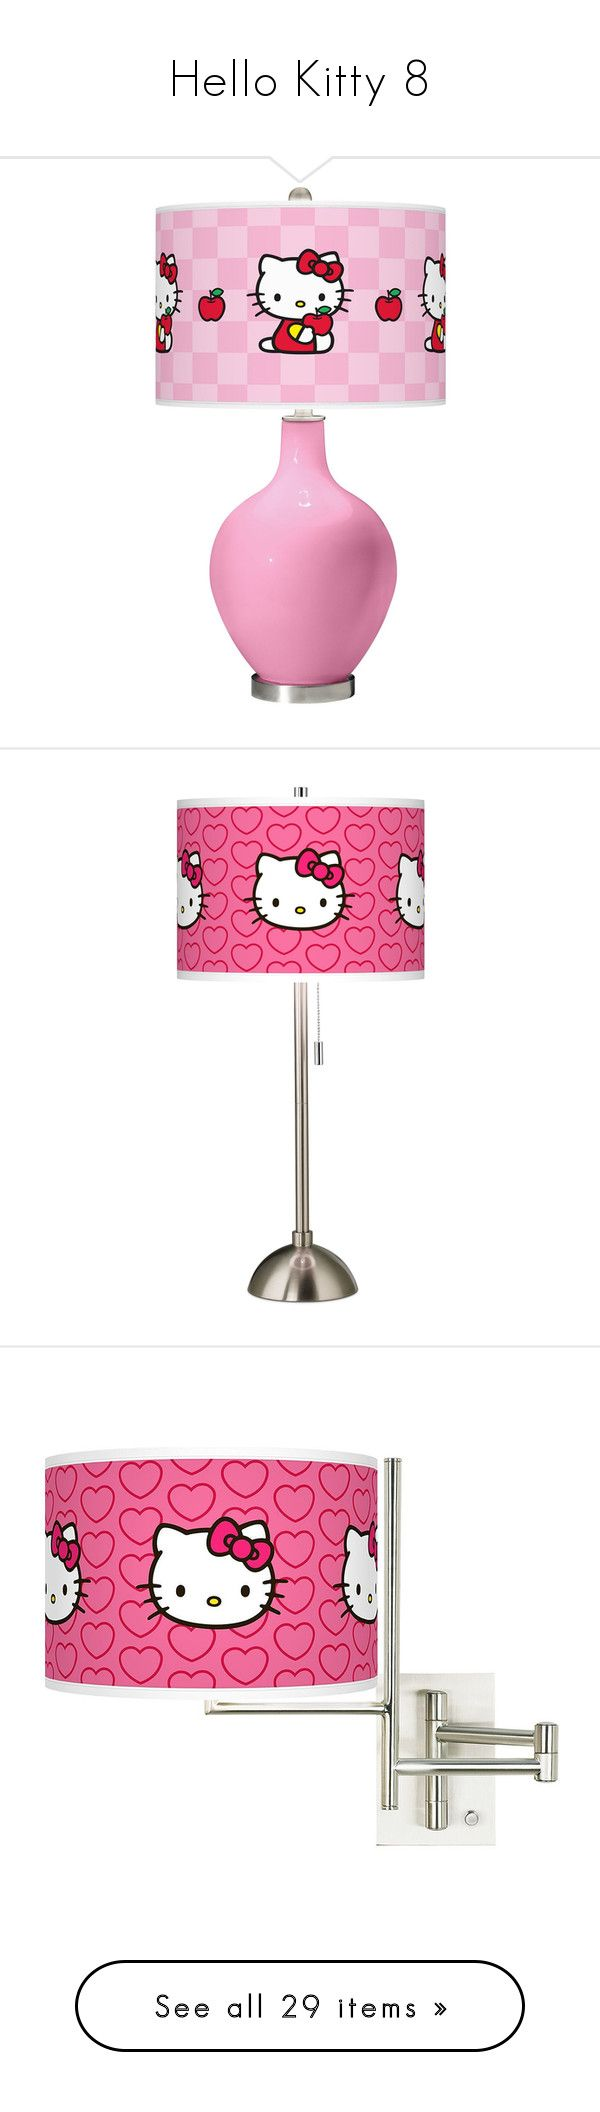 """""""Hello Kitty 8"""" by denise-drinhouser ❤ liked on Polyvore featuring home, lighting, table lamps, hello kitty, hello kitty table lamp, contemporary modern lighting, hello kitty lamp, pink light shade, handmade lamps and hello kitty lights"""